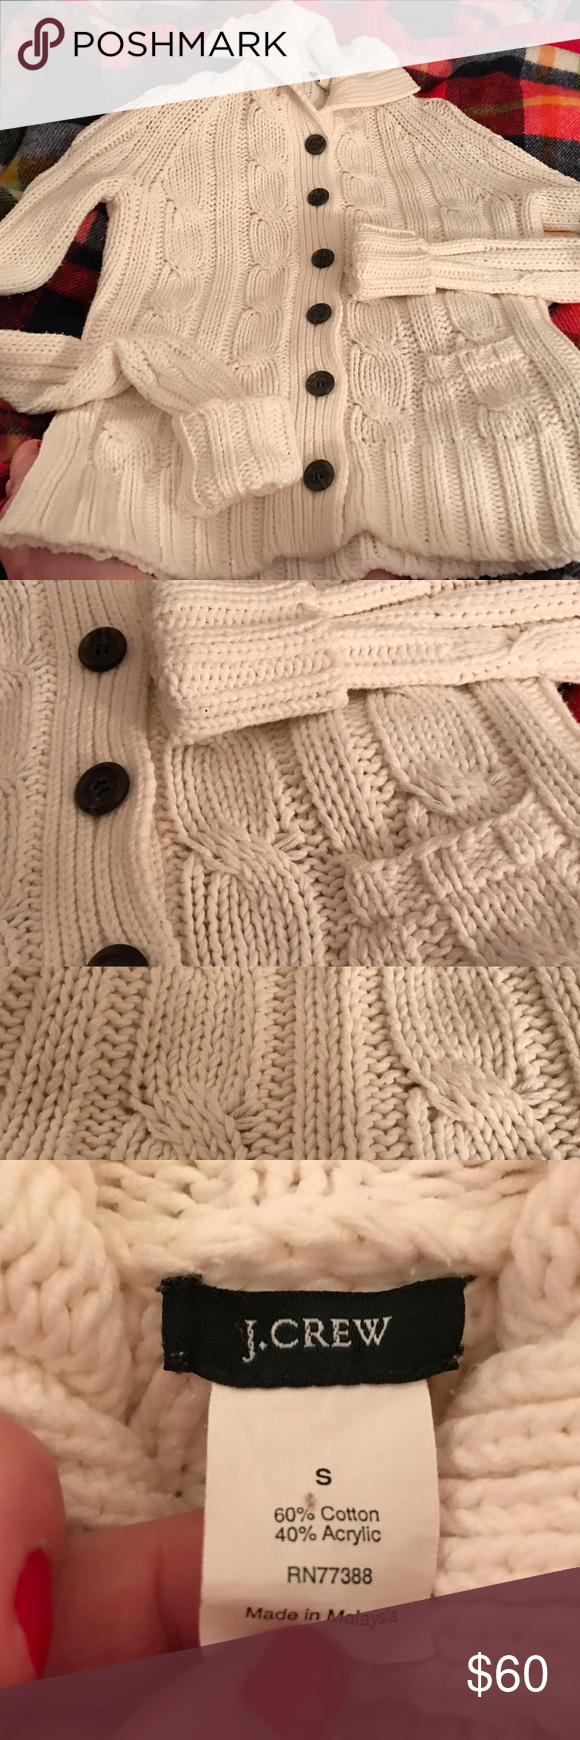 J. CREW Long Cardigan Large Cableknit Sweater S White J. CREW ...